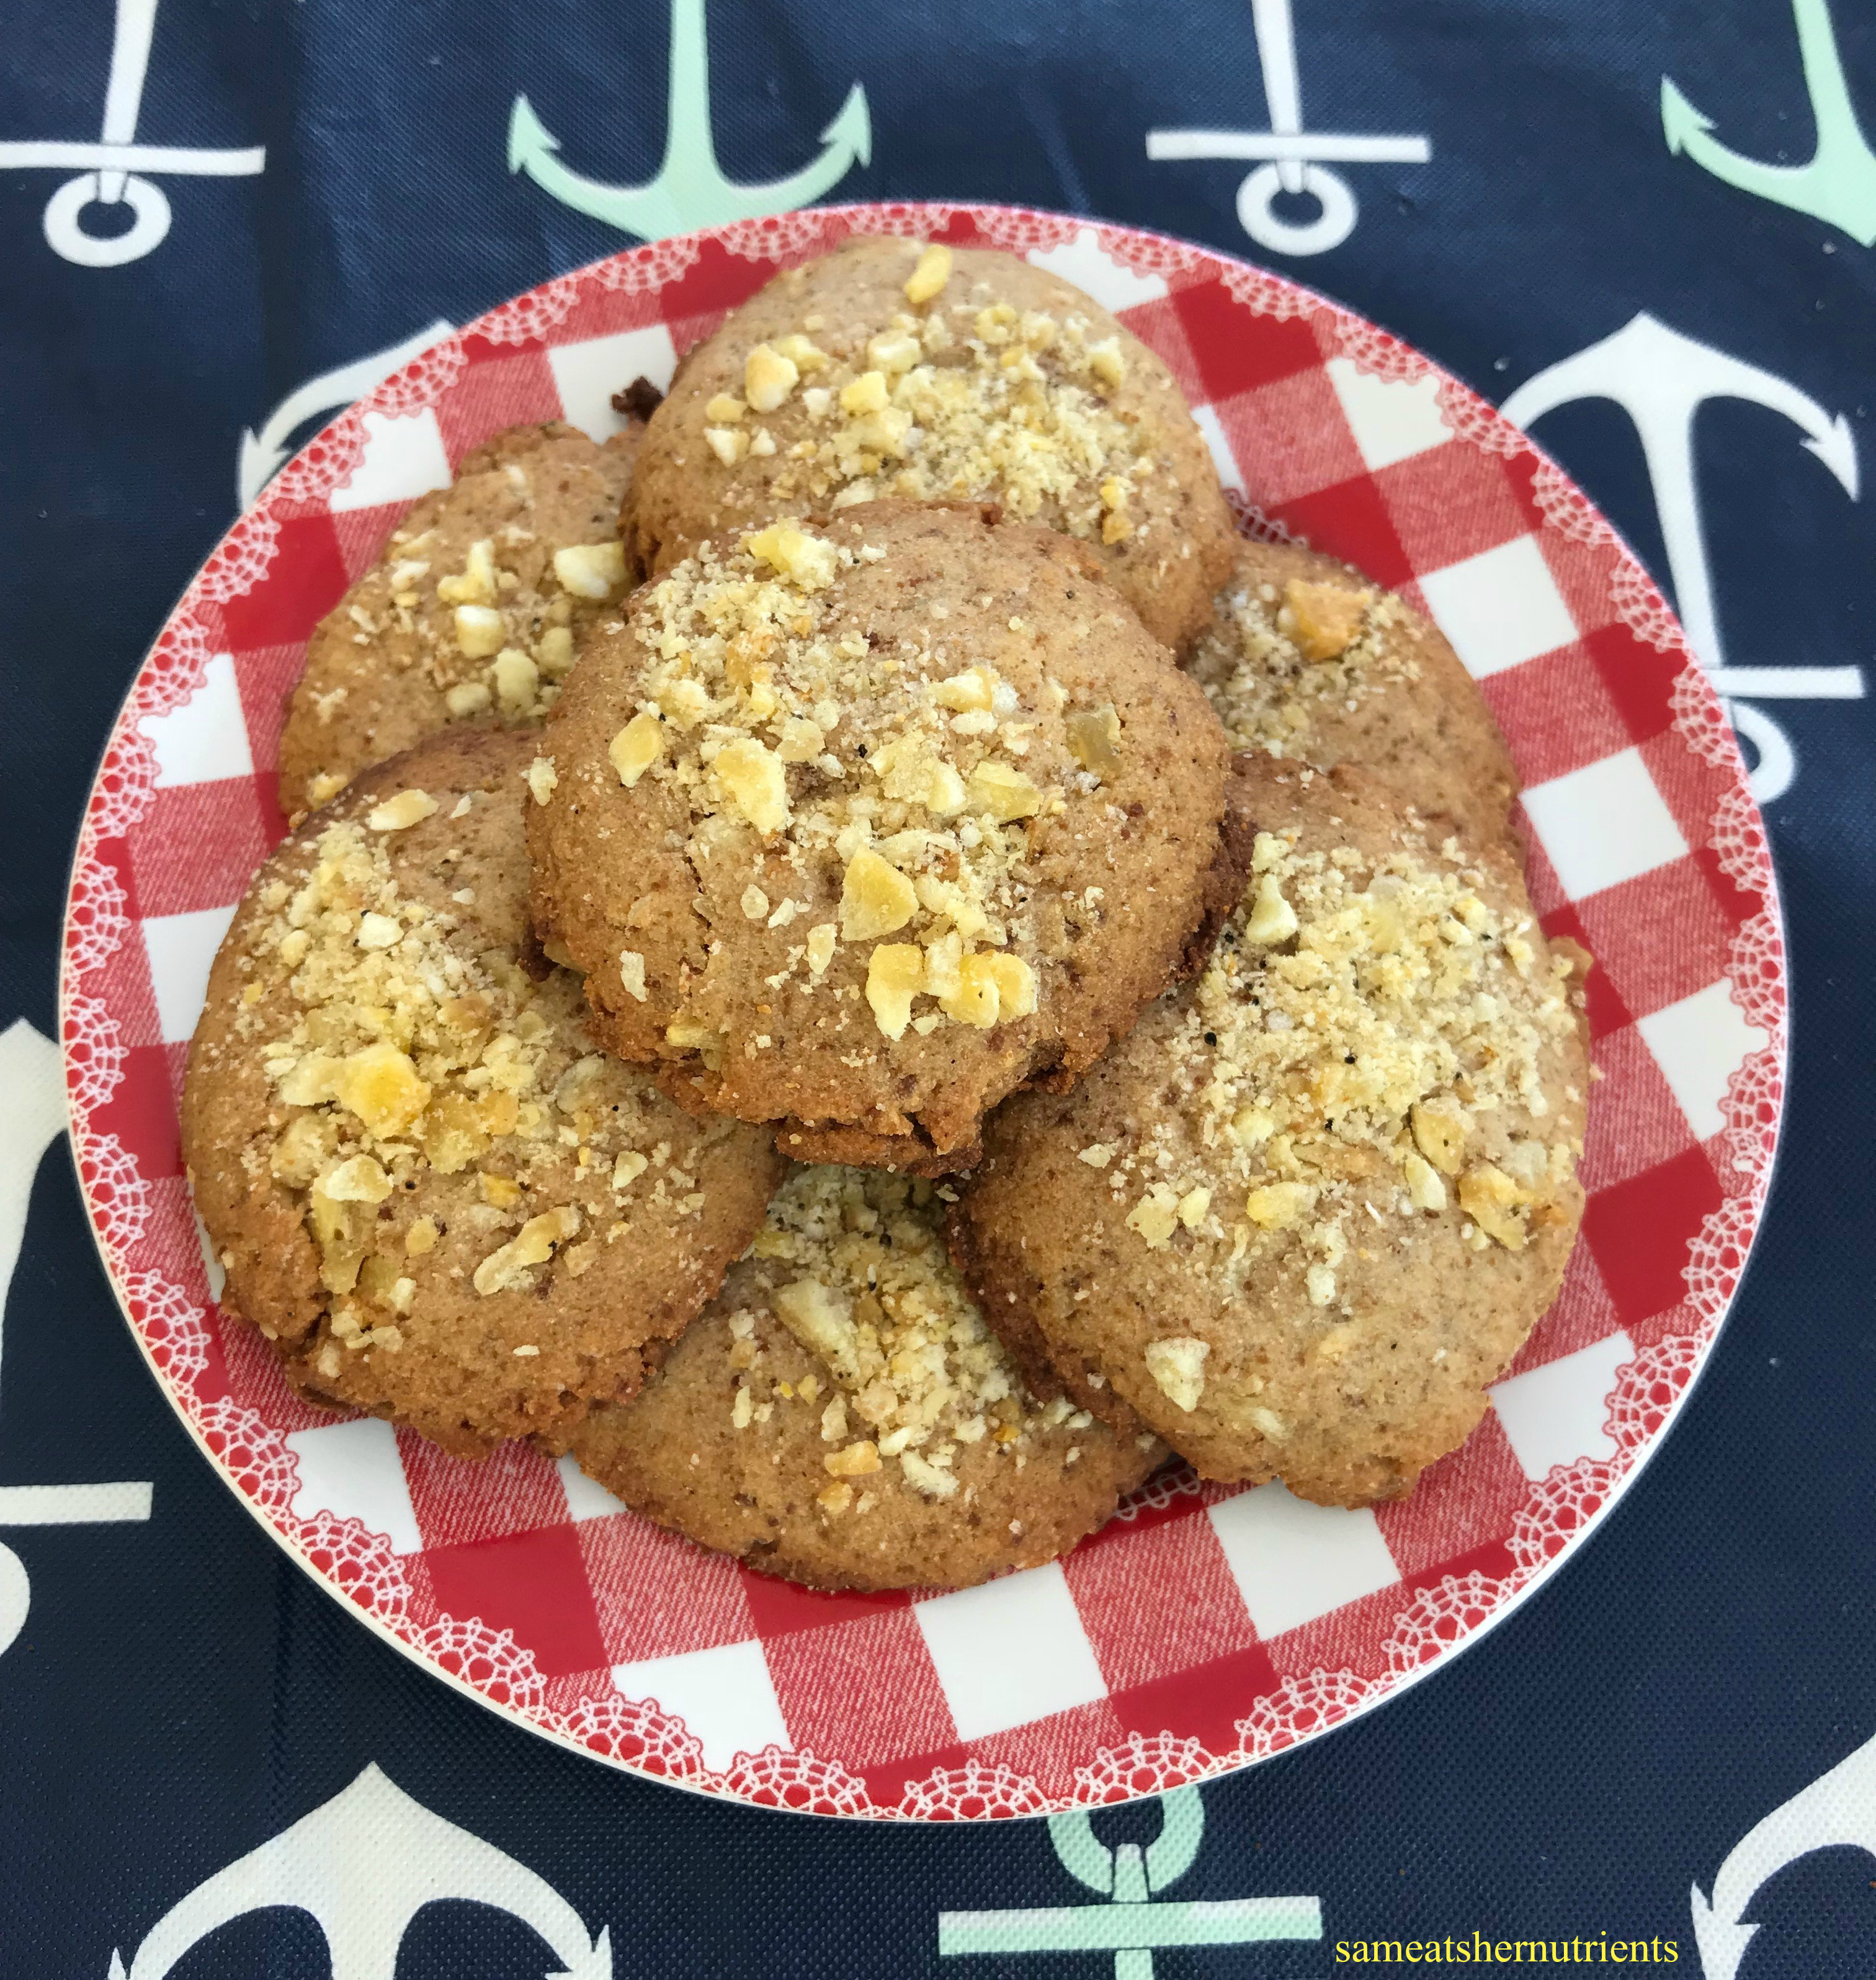 plate of banana crunch cookies - AIP Paleo